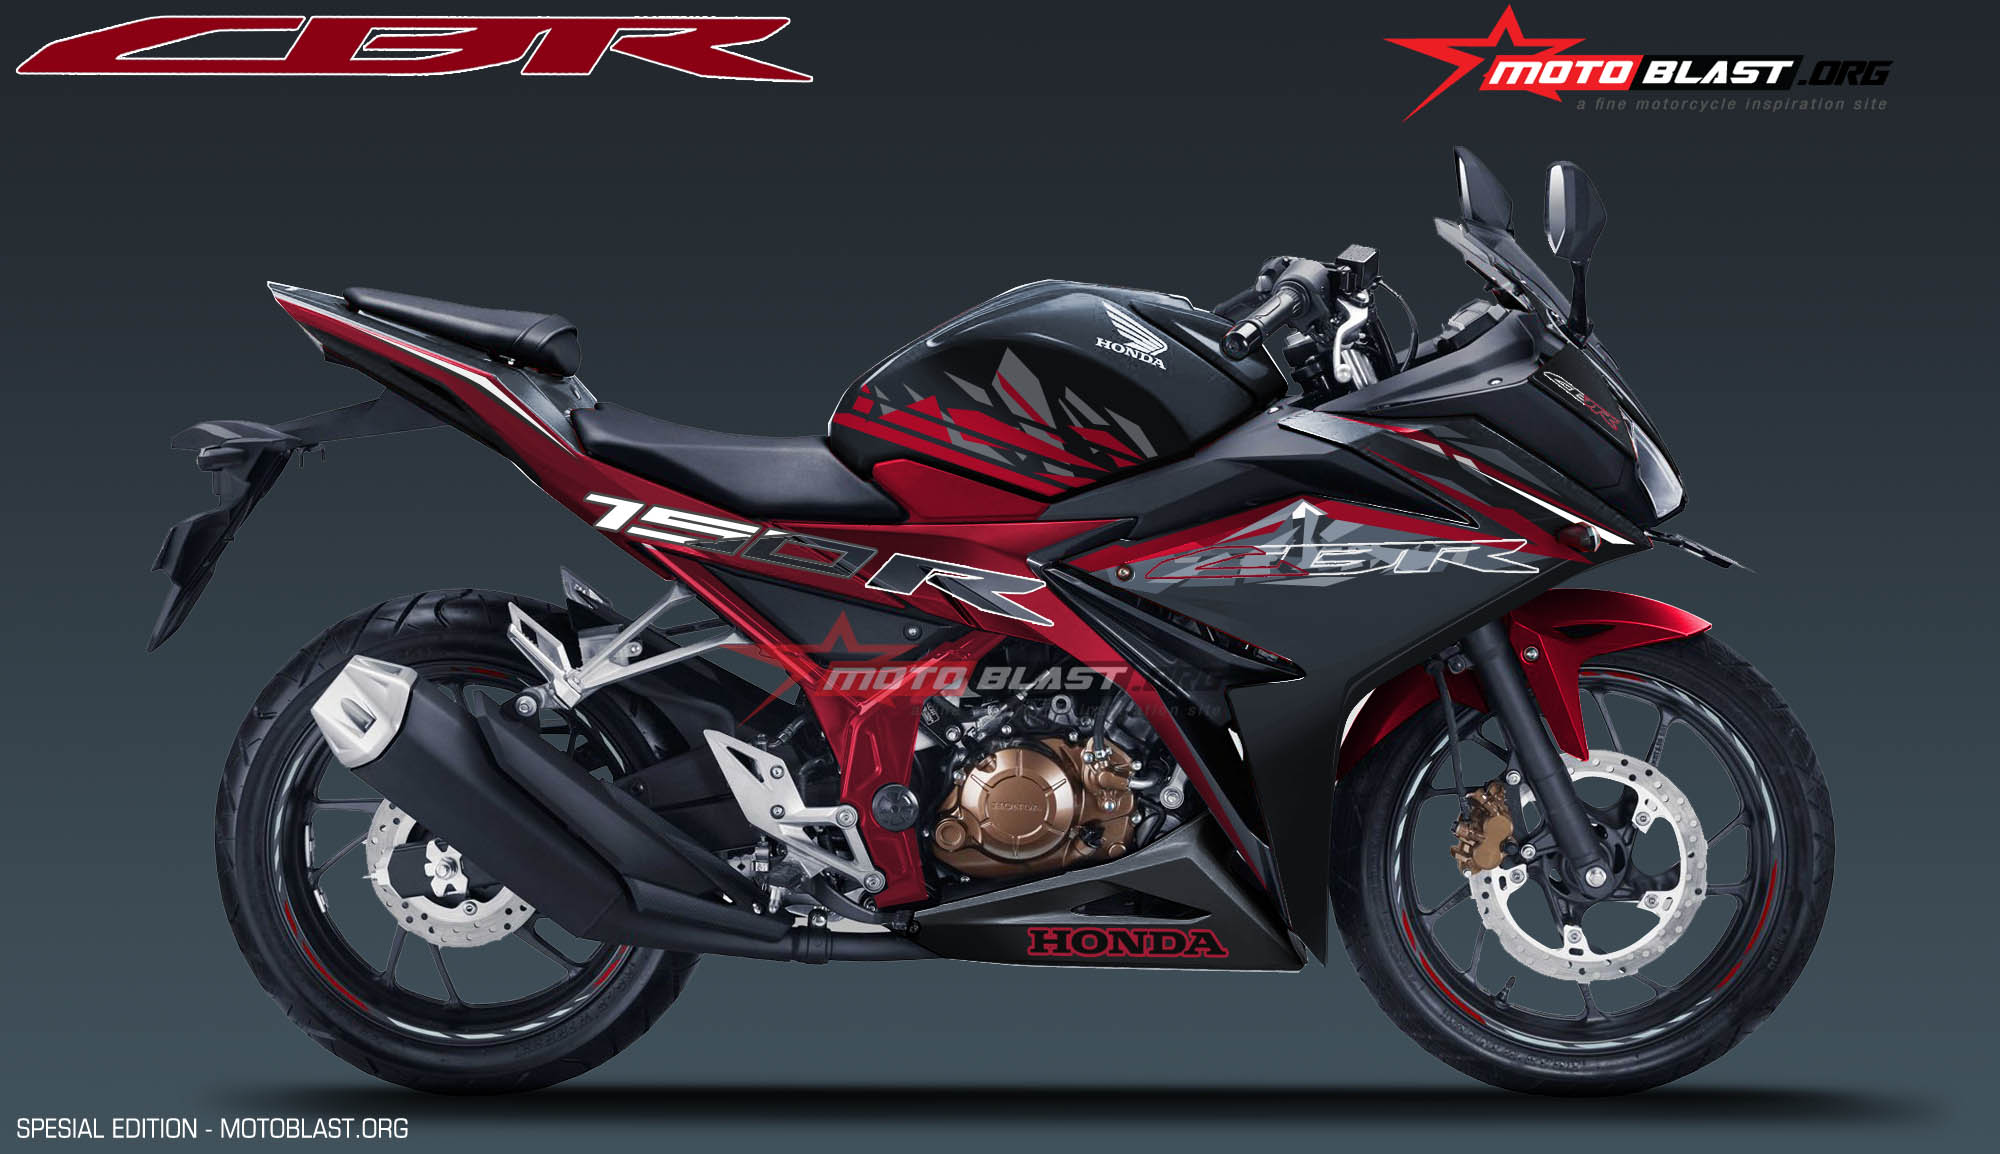 Download Koleksi 93 Modifikasi Motor Cb150r Spesial Edition Terbaru